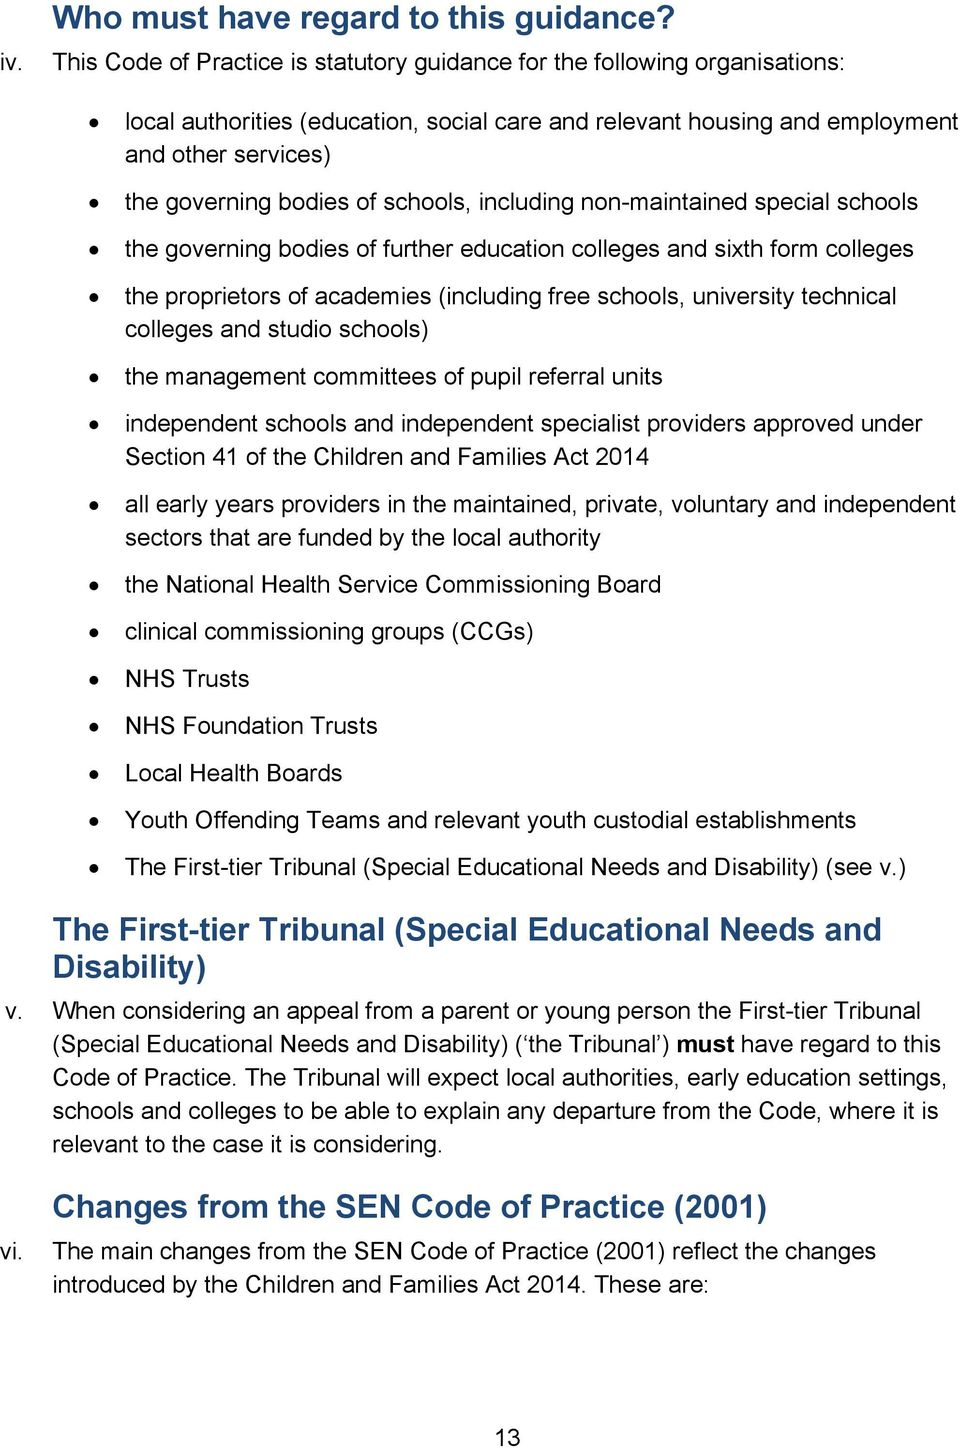 schools, including non-maintained special schools the governing bodies of further education colleges and sixth form colleges the proprietors of academies (including free schools, university technical